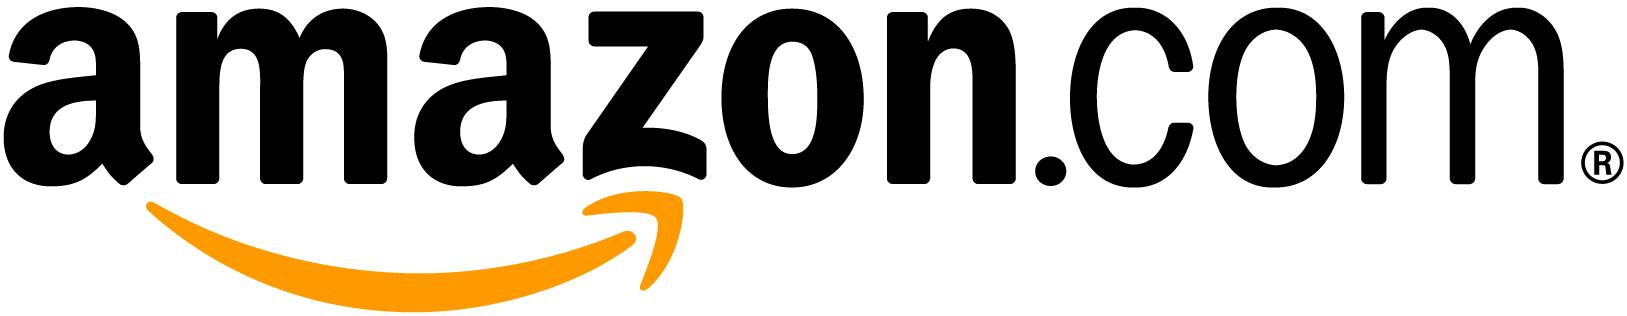 amazon-com-logo-online-store-sales-deals-1.jpg